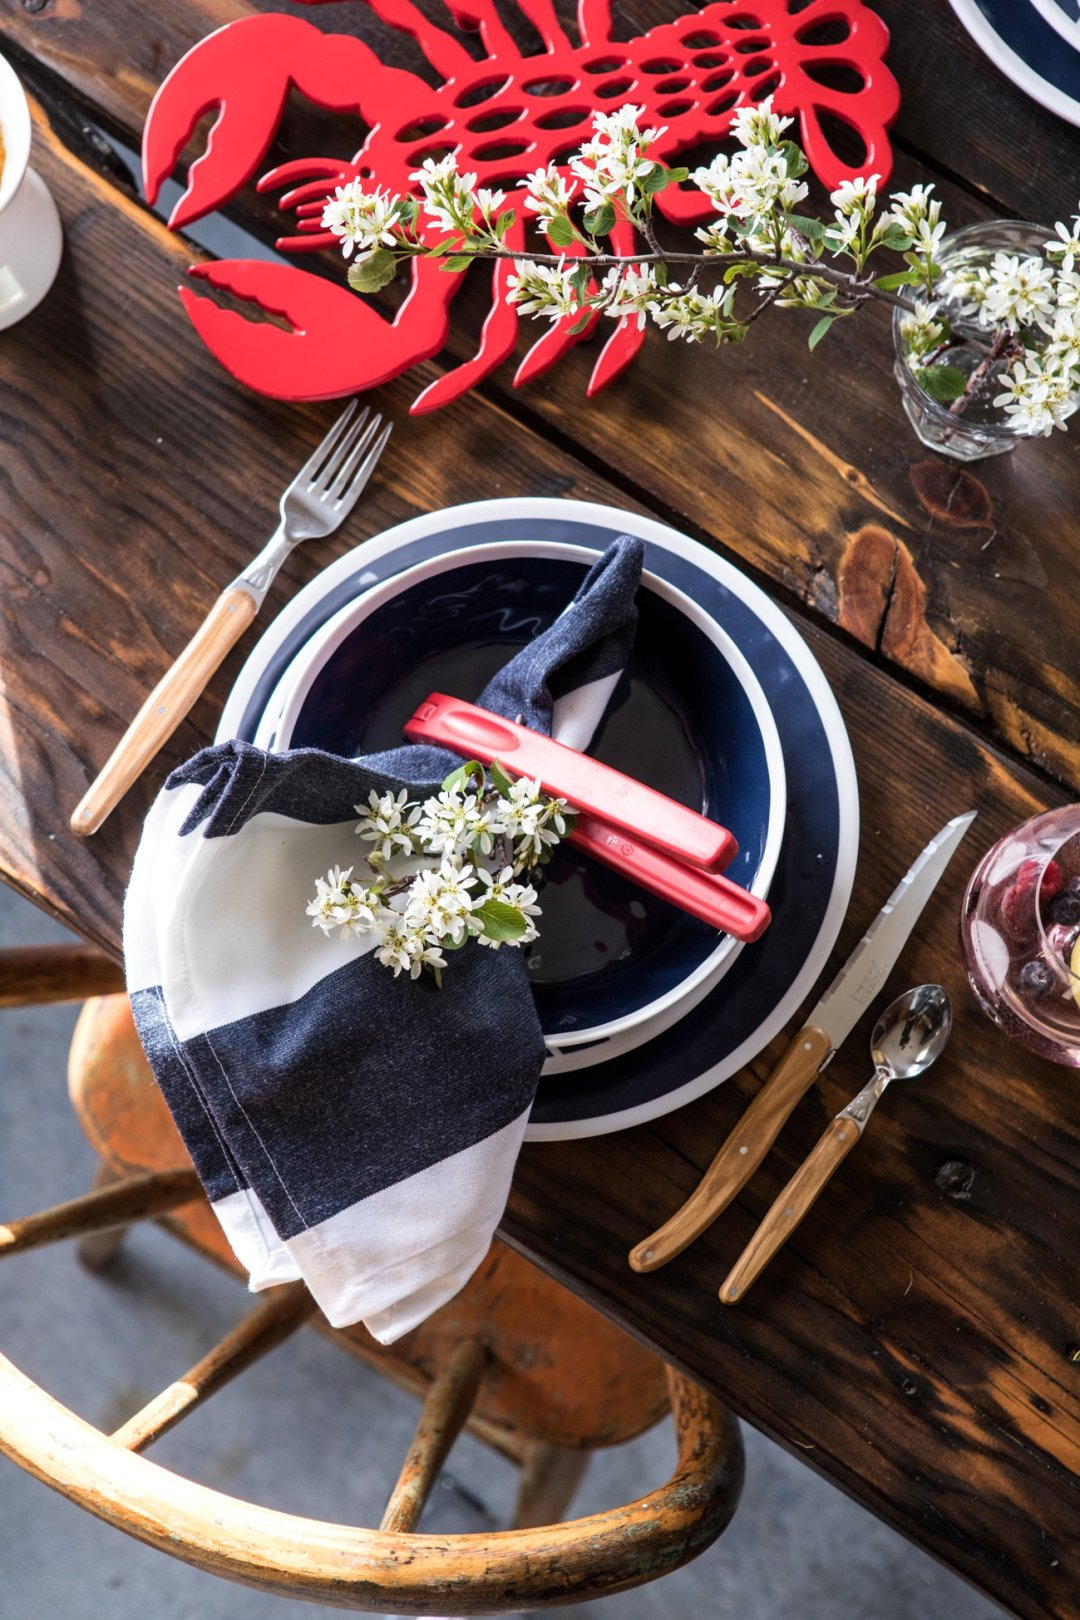 Dinner setting with blue plates, blue striped napkin, and red seafood cracker with white small flowers as center piece and red lobster trivet